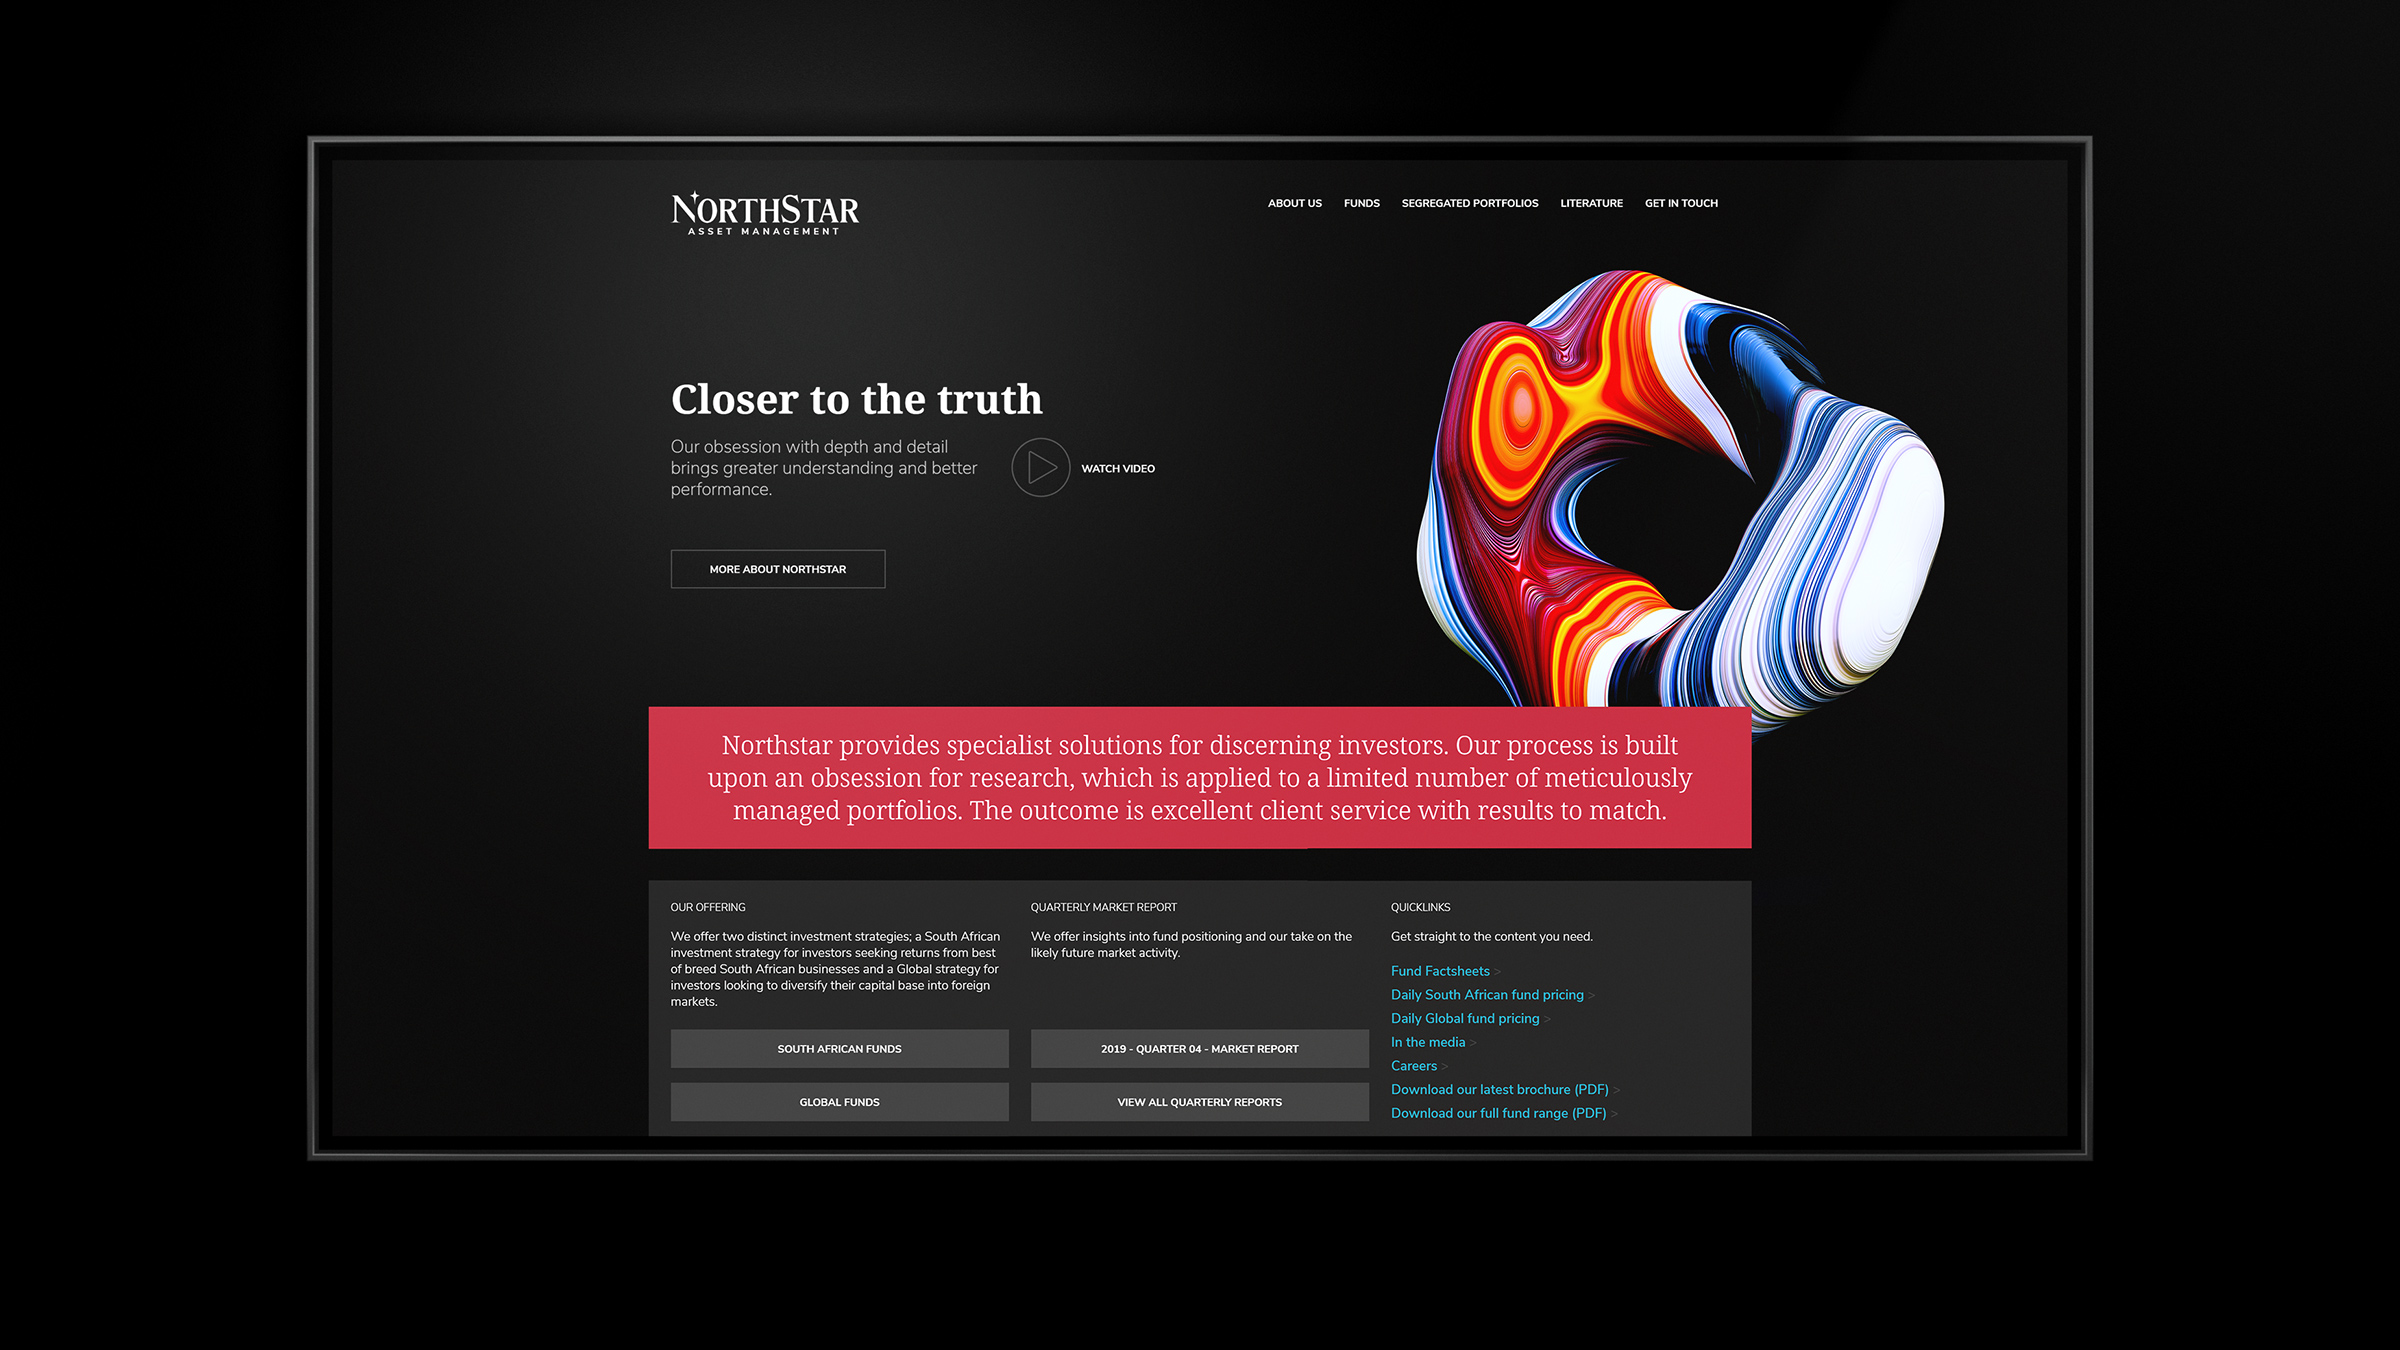 The home page of the site articulates the overall positioning front and center.